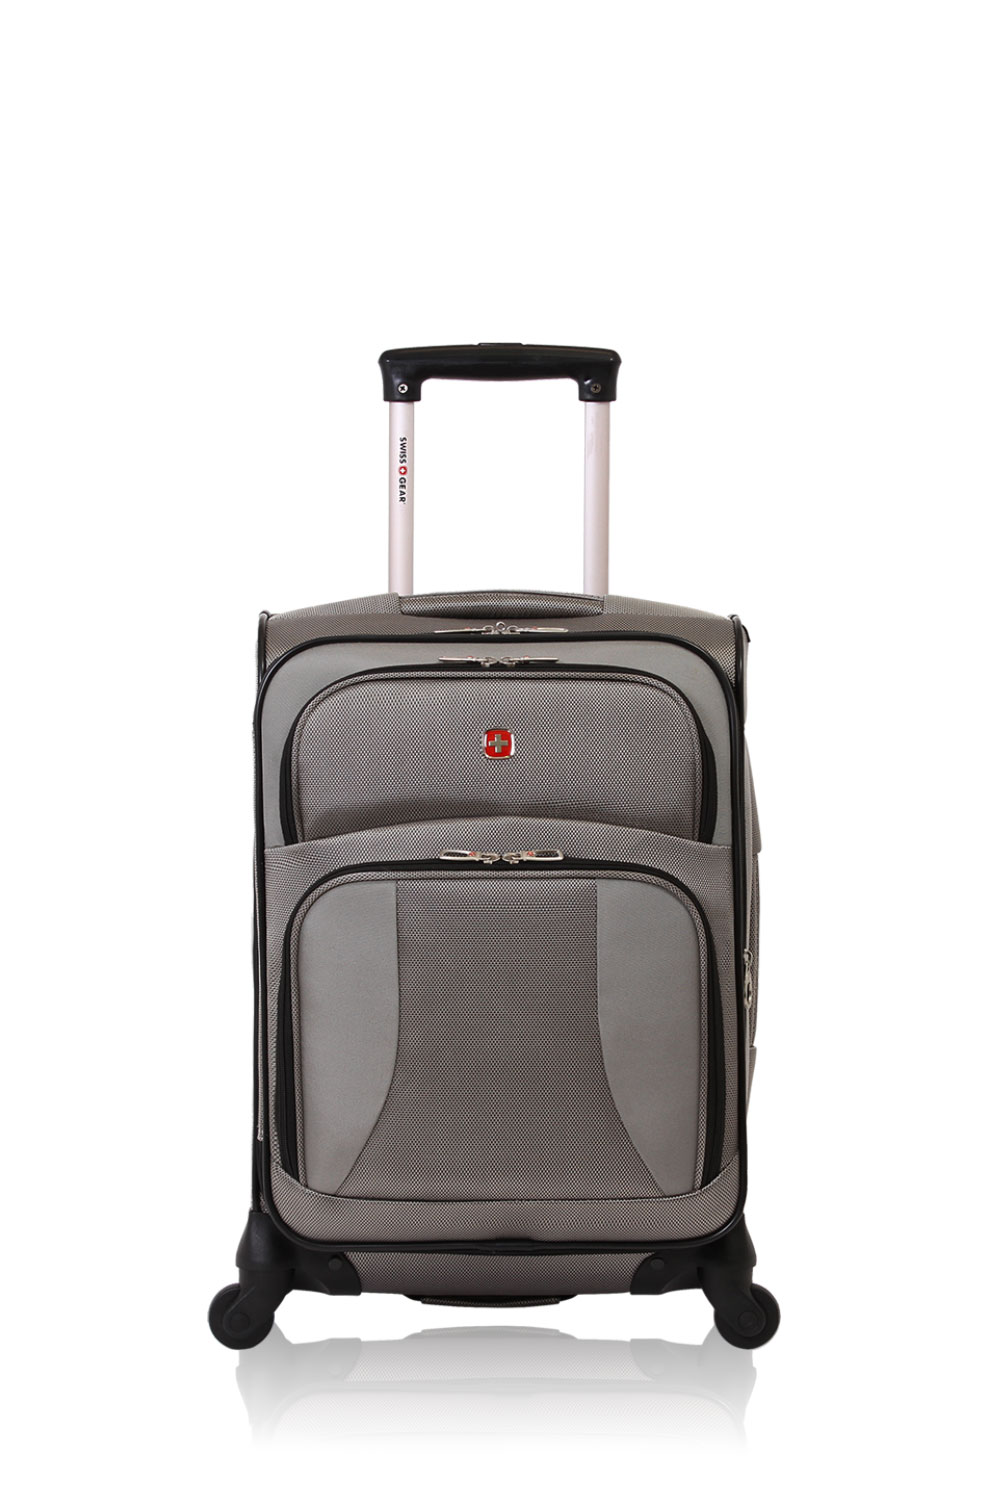 "SWISSGEAR 7211 20"" Expandable Spinner Luggage"